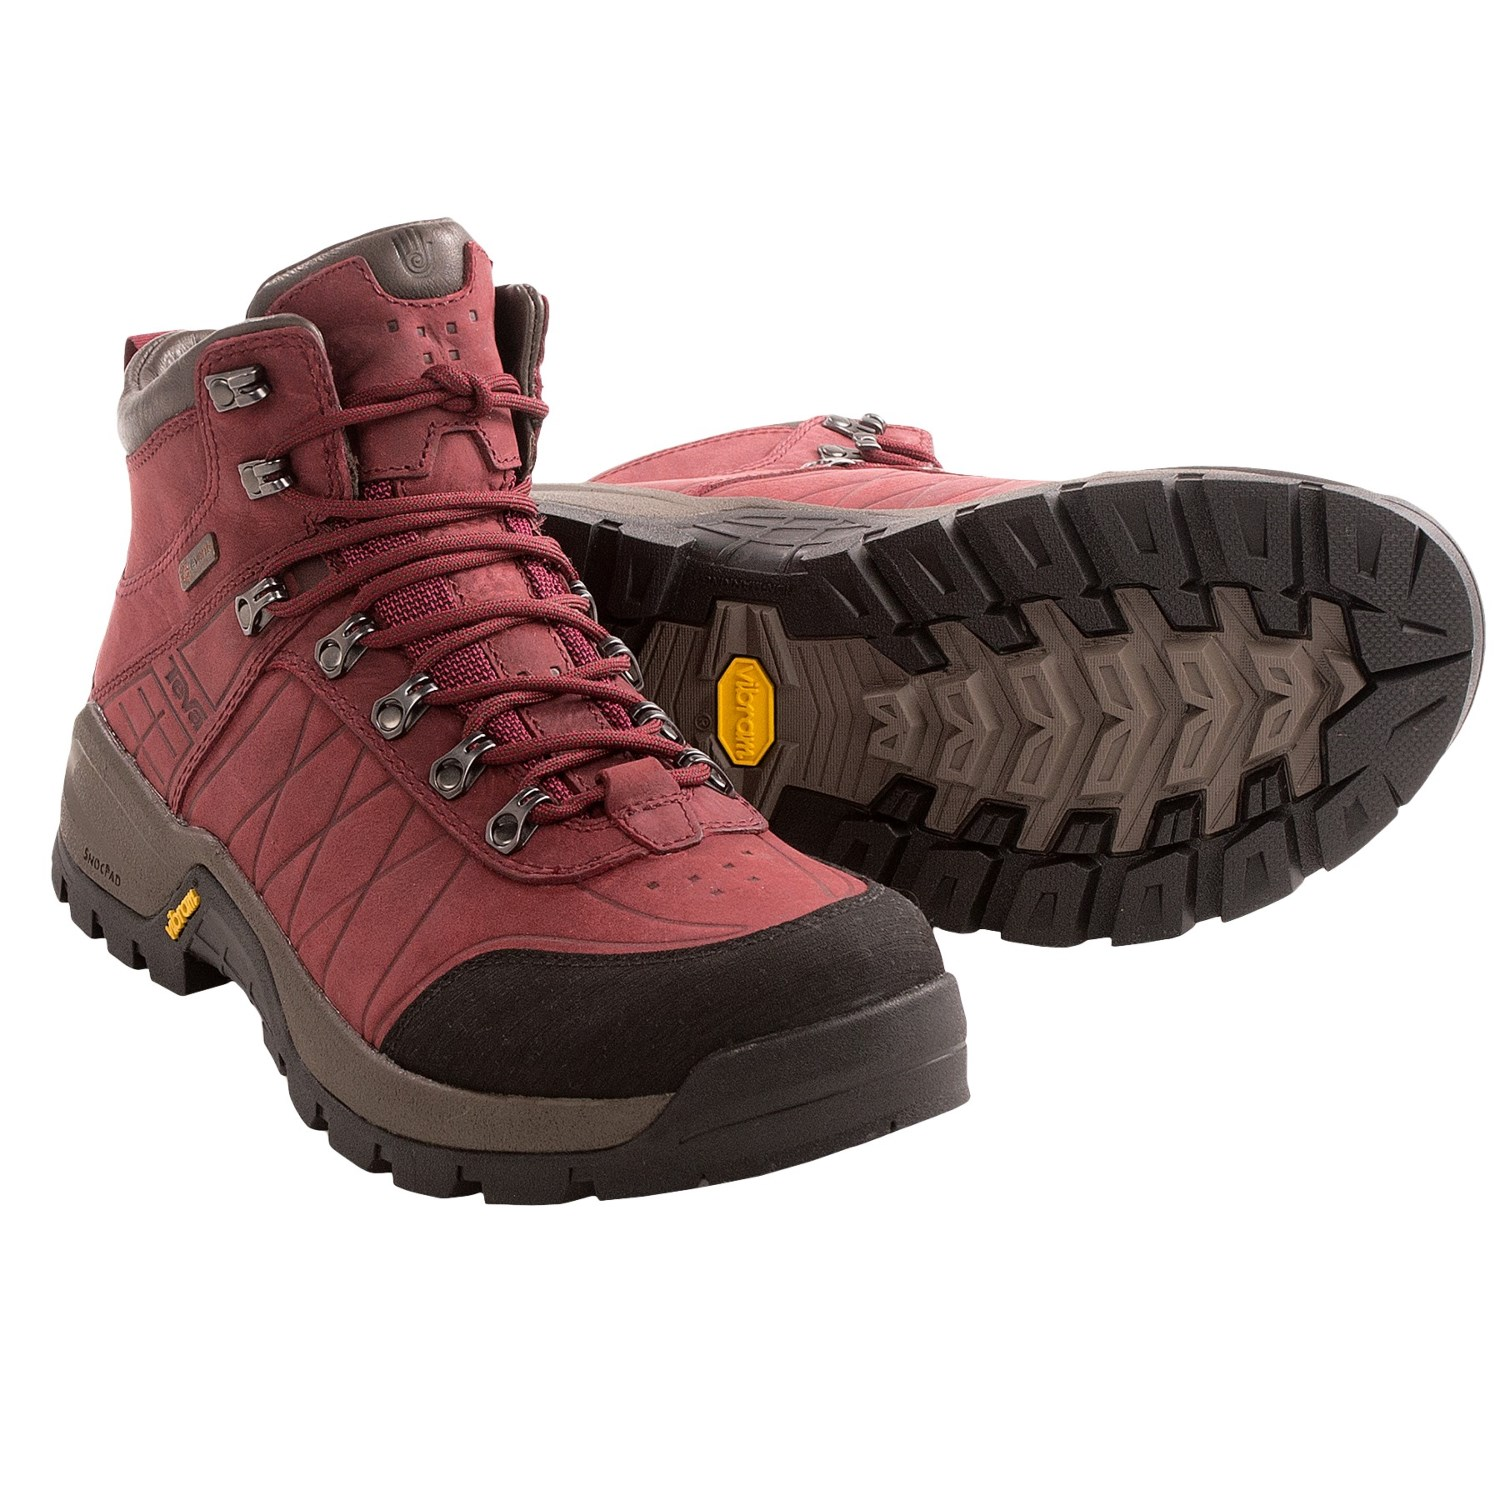 Hiking Footwear - Hiking Boots Shoes | Merrell